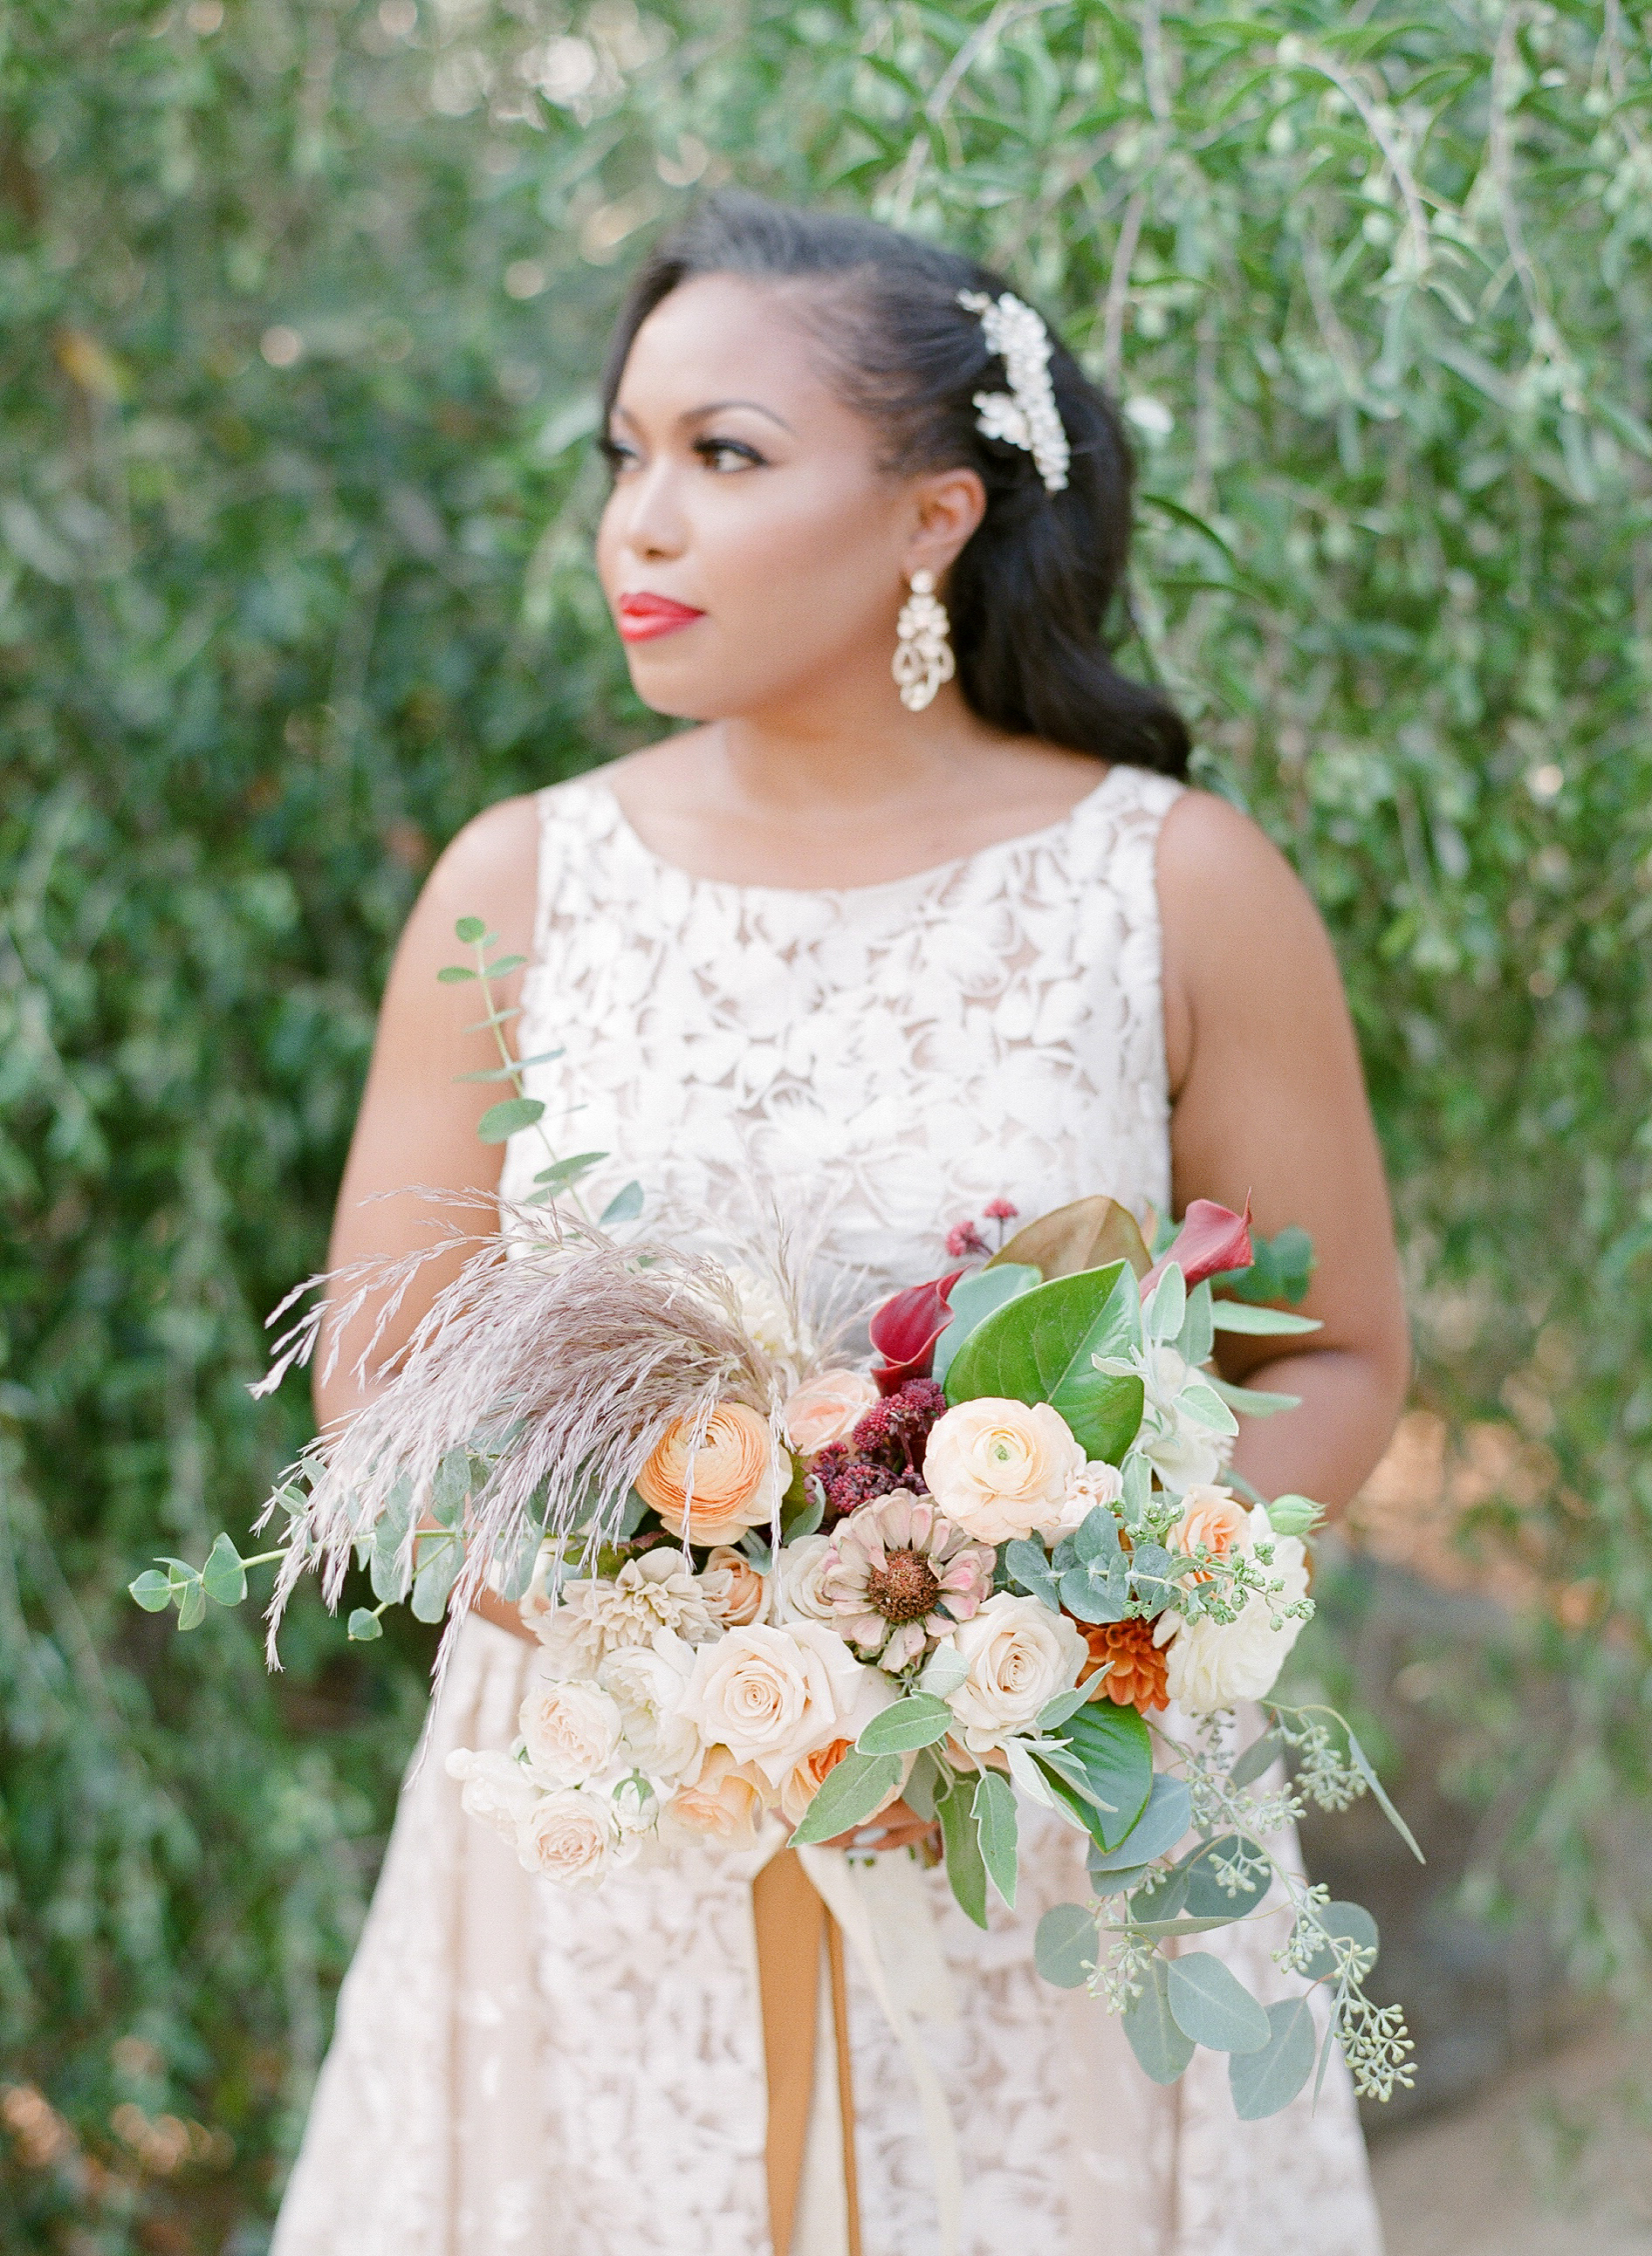 bold lipstick waiting bride with bouquet